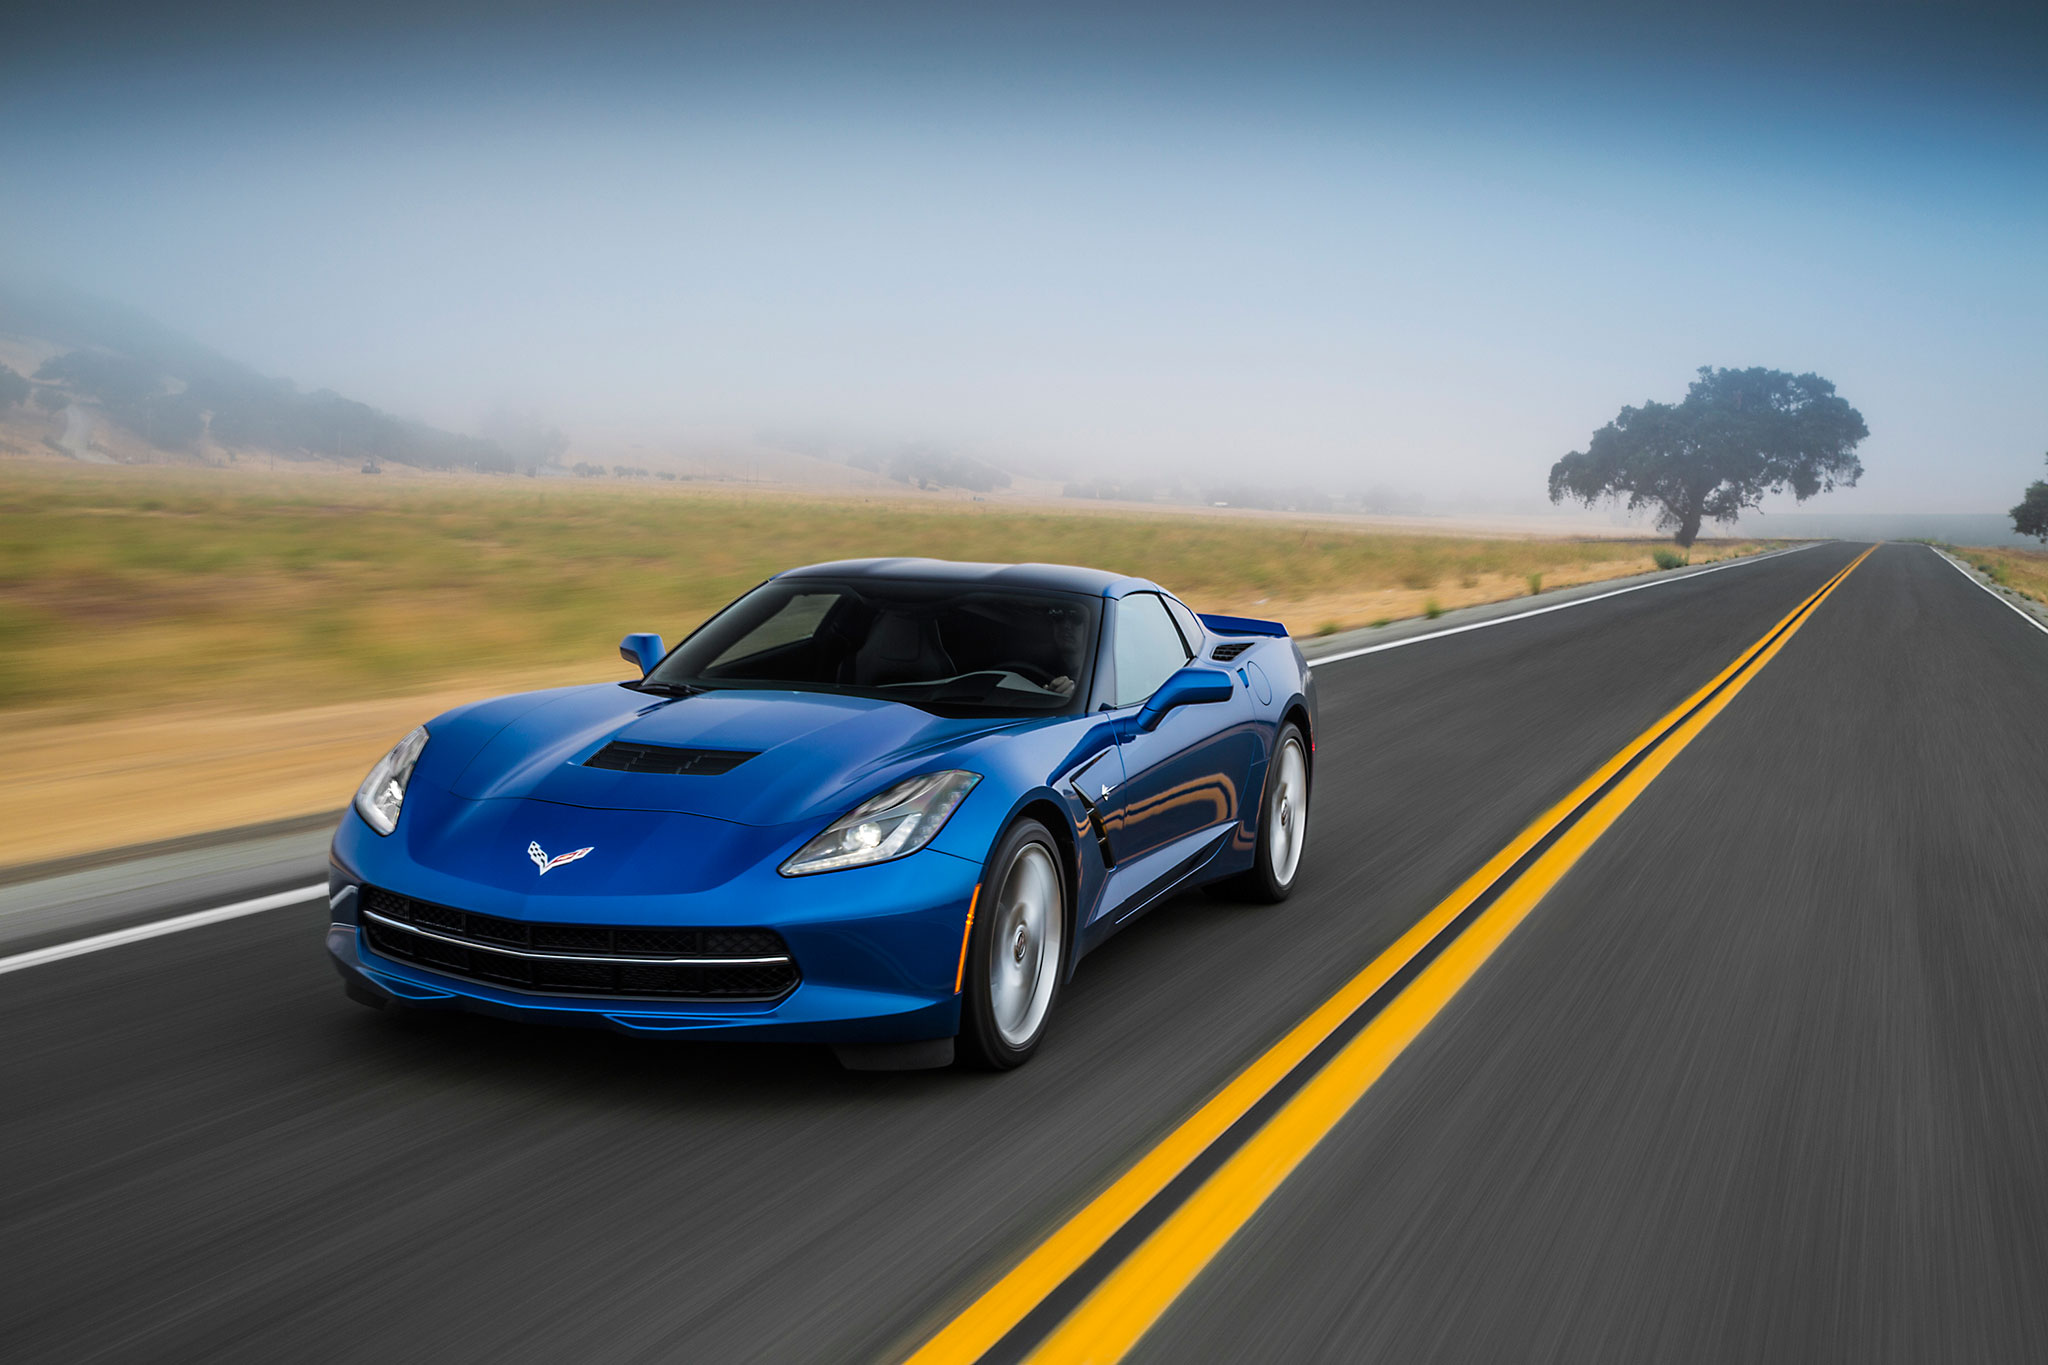 2015 Chevrolet Corvette Stingray Eight Speed Automatic First Drive